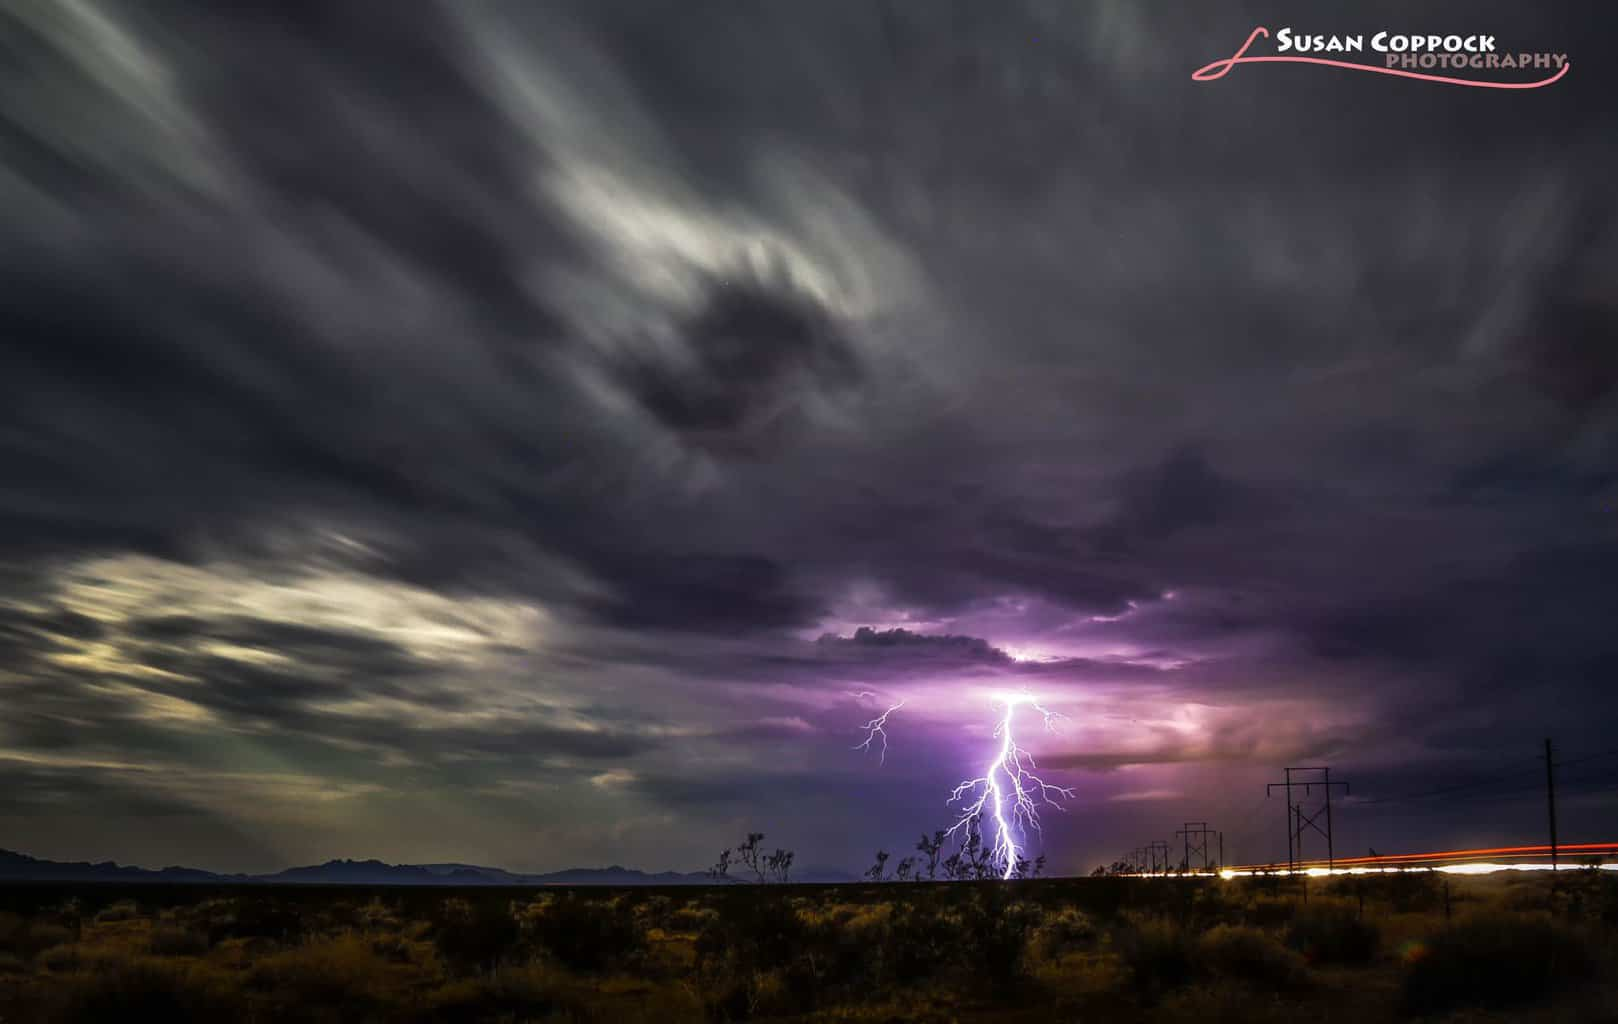 One of the last shots of the monsoon season last year in September. Taken just outside Quartzsite, Arizona.